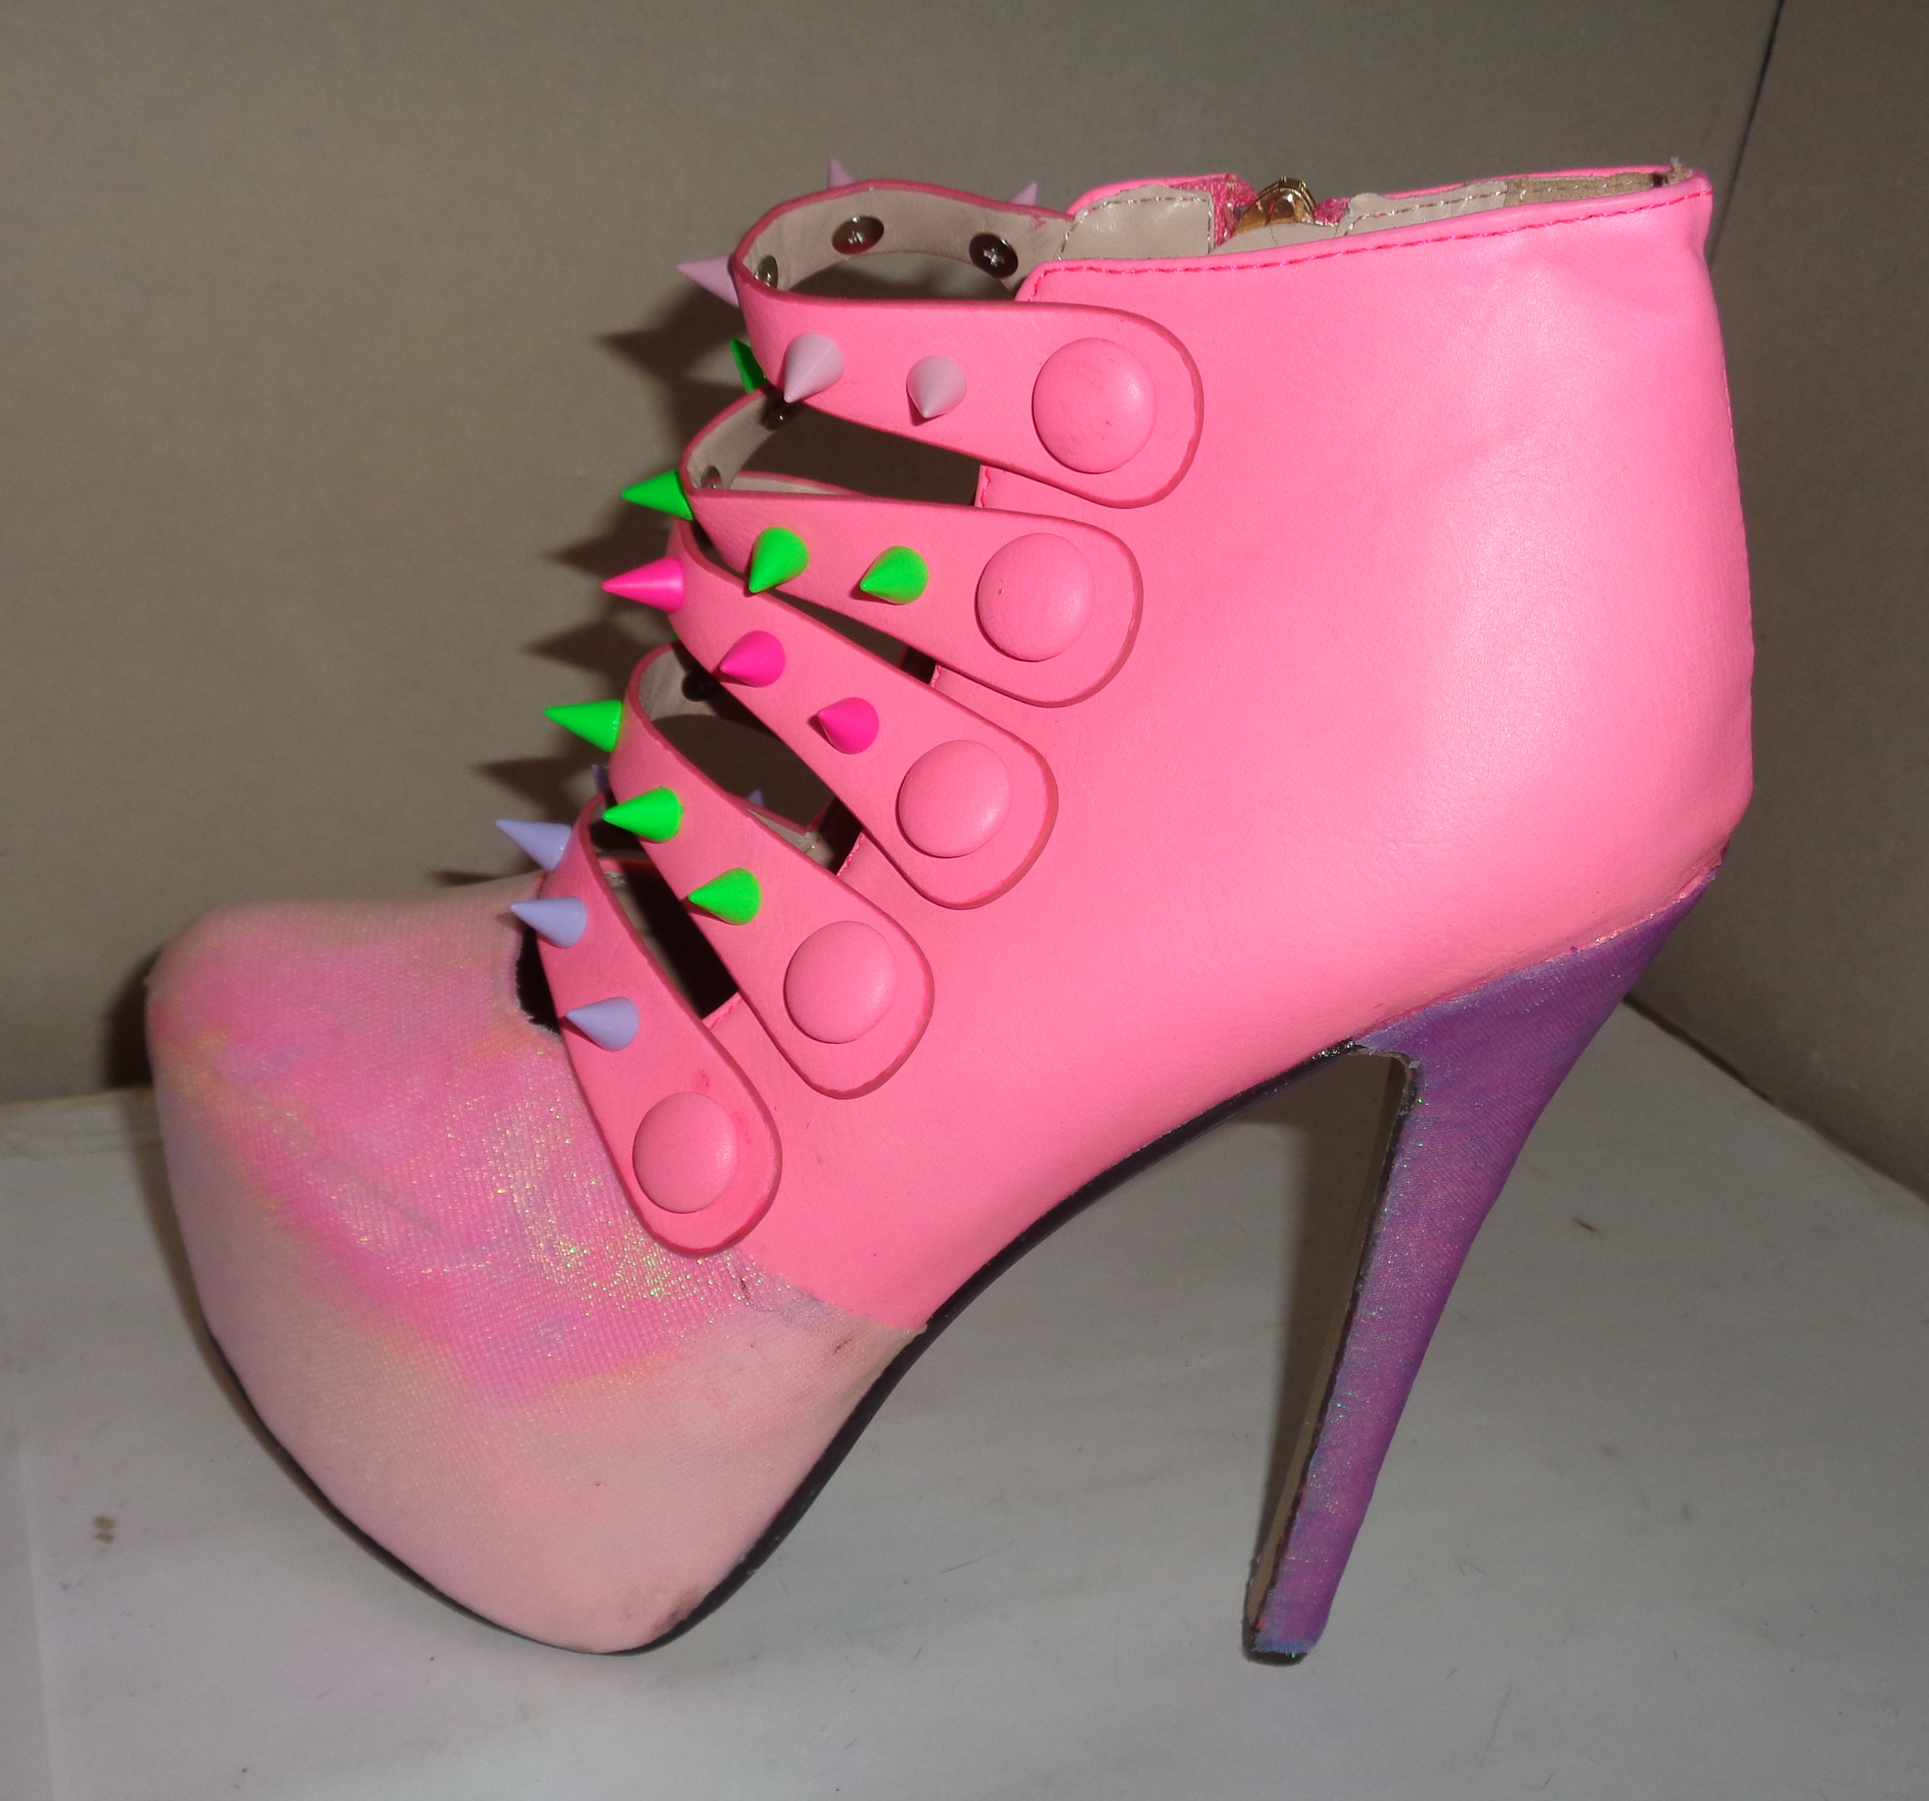 Pink iridescent spike platform shoes